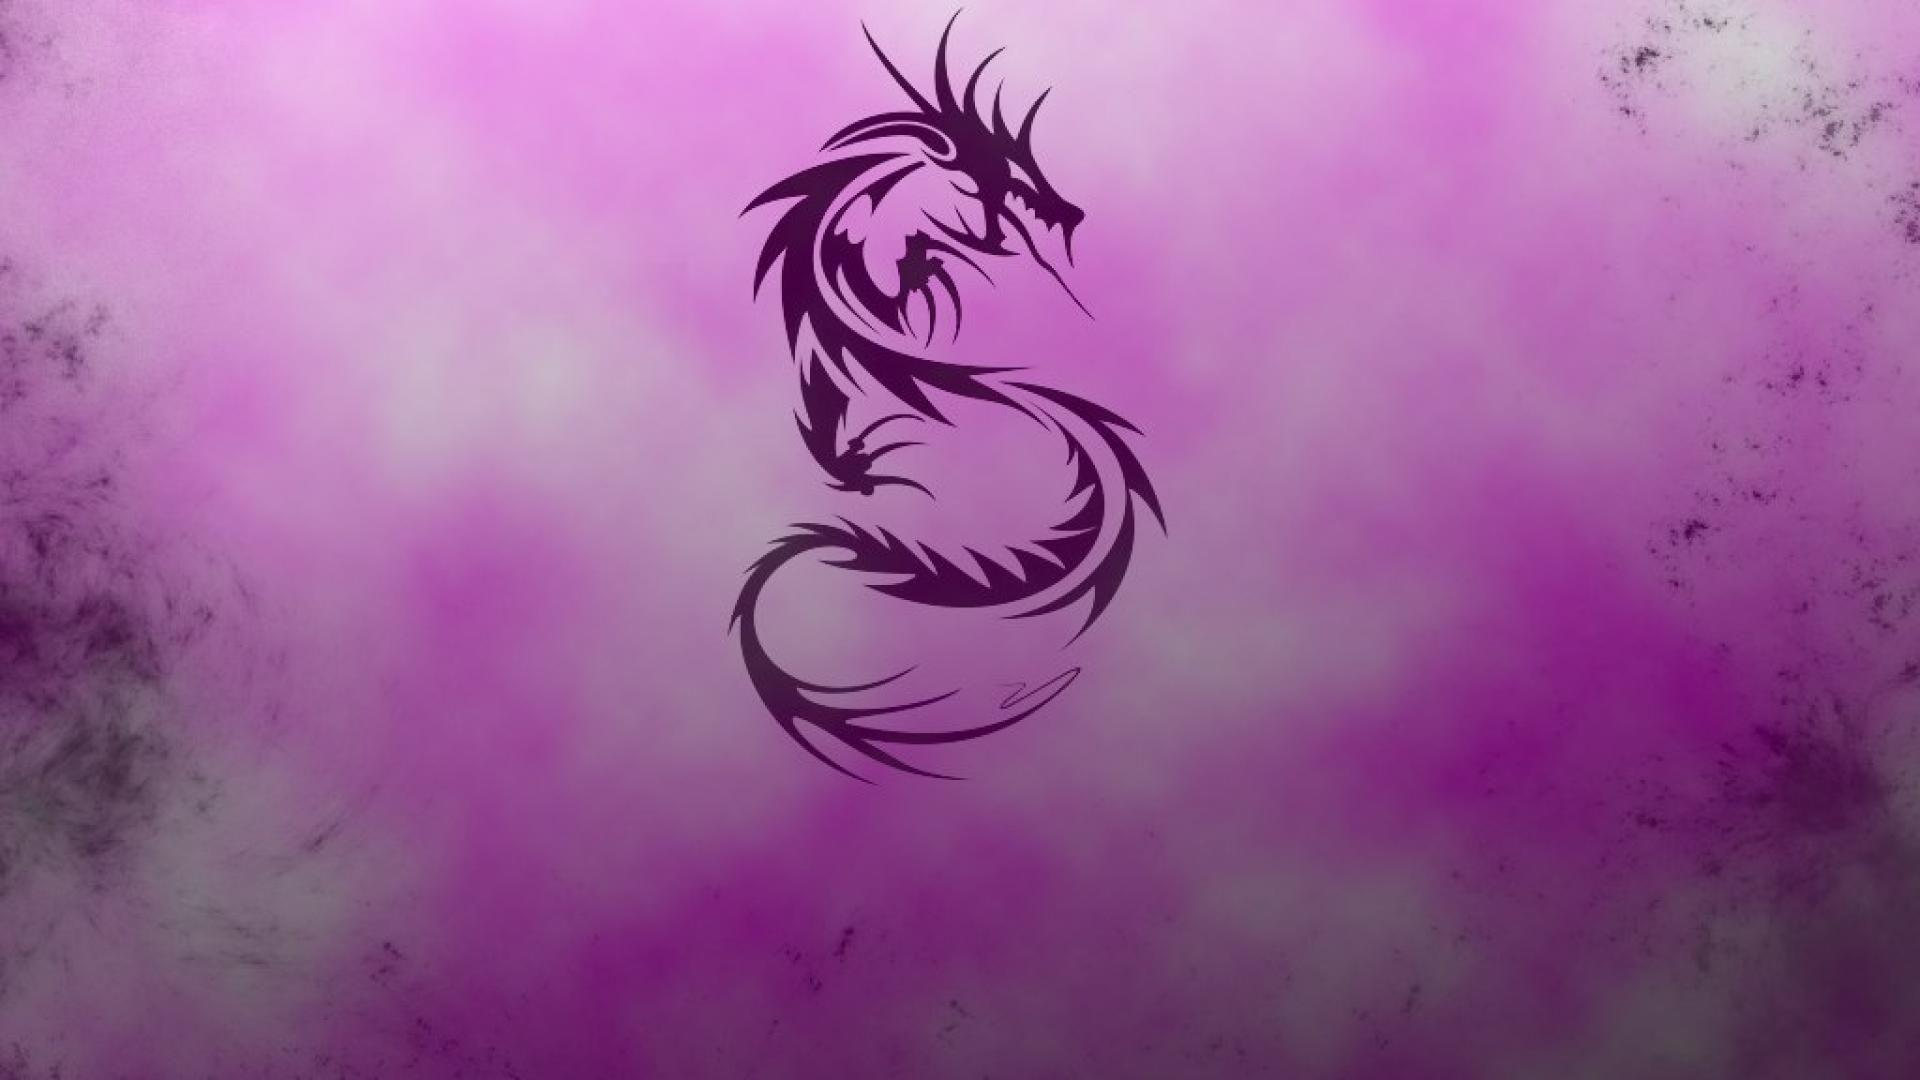 Purple Dragon Wallpapers - Wallpaper Cave